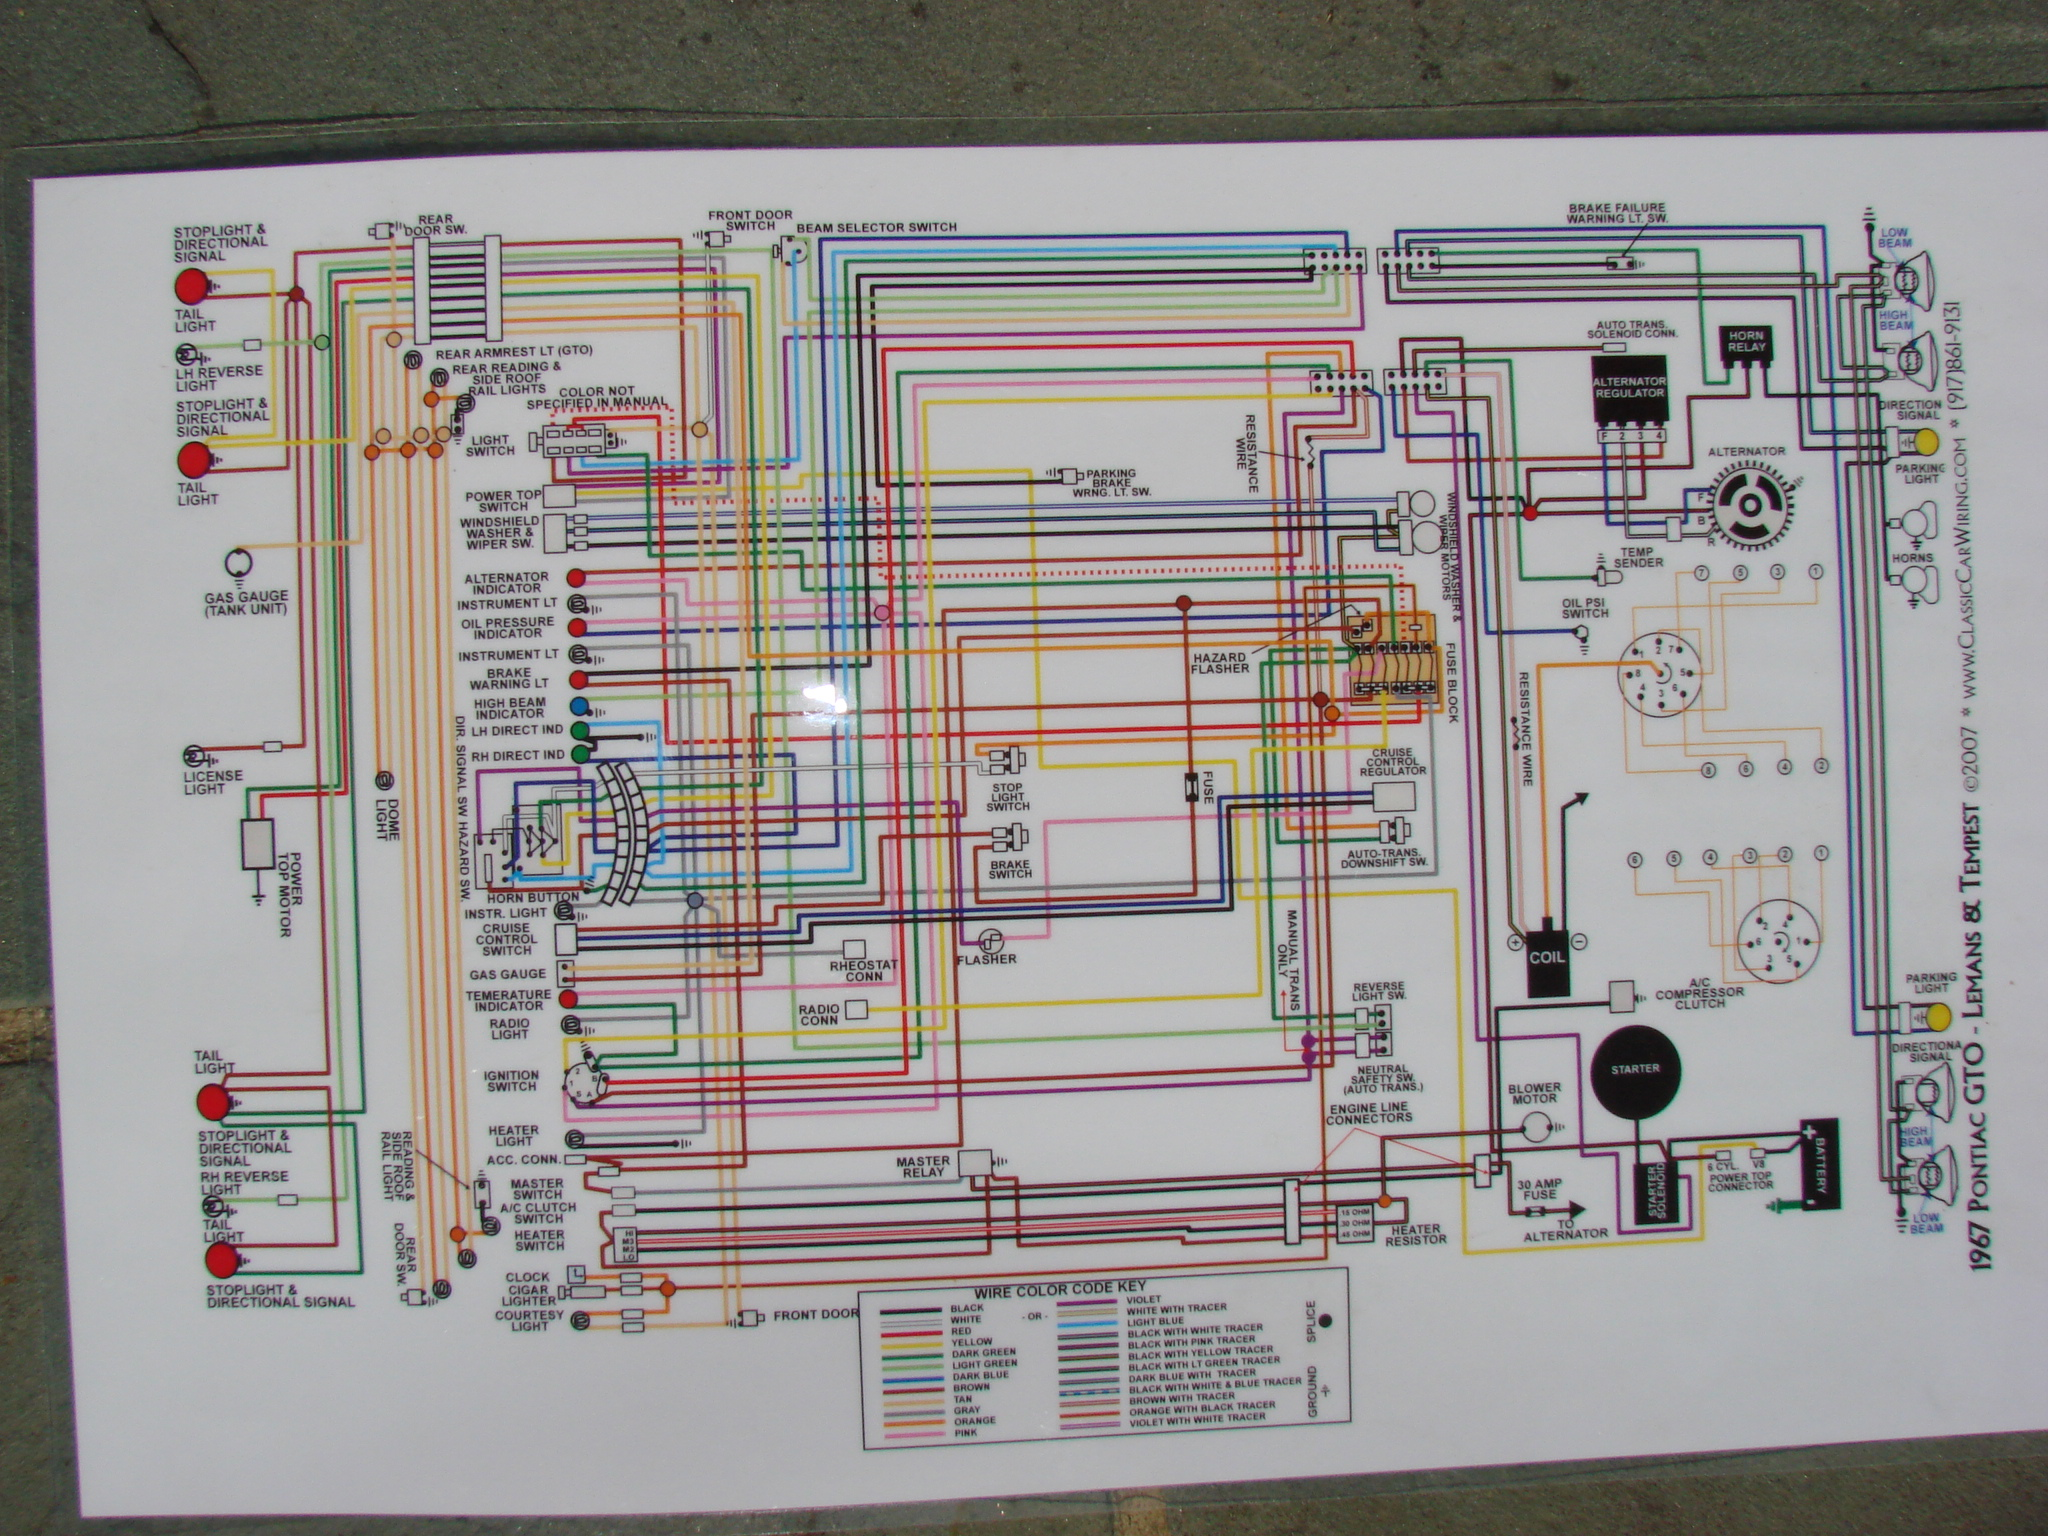 1967 pontiac catalina wiring diagram - wiring diagram regular -  regular.cfcarsnoleggio.it  cfcarsnoleggio.it